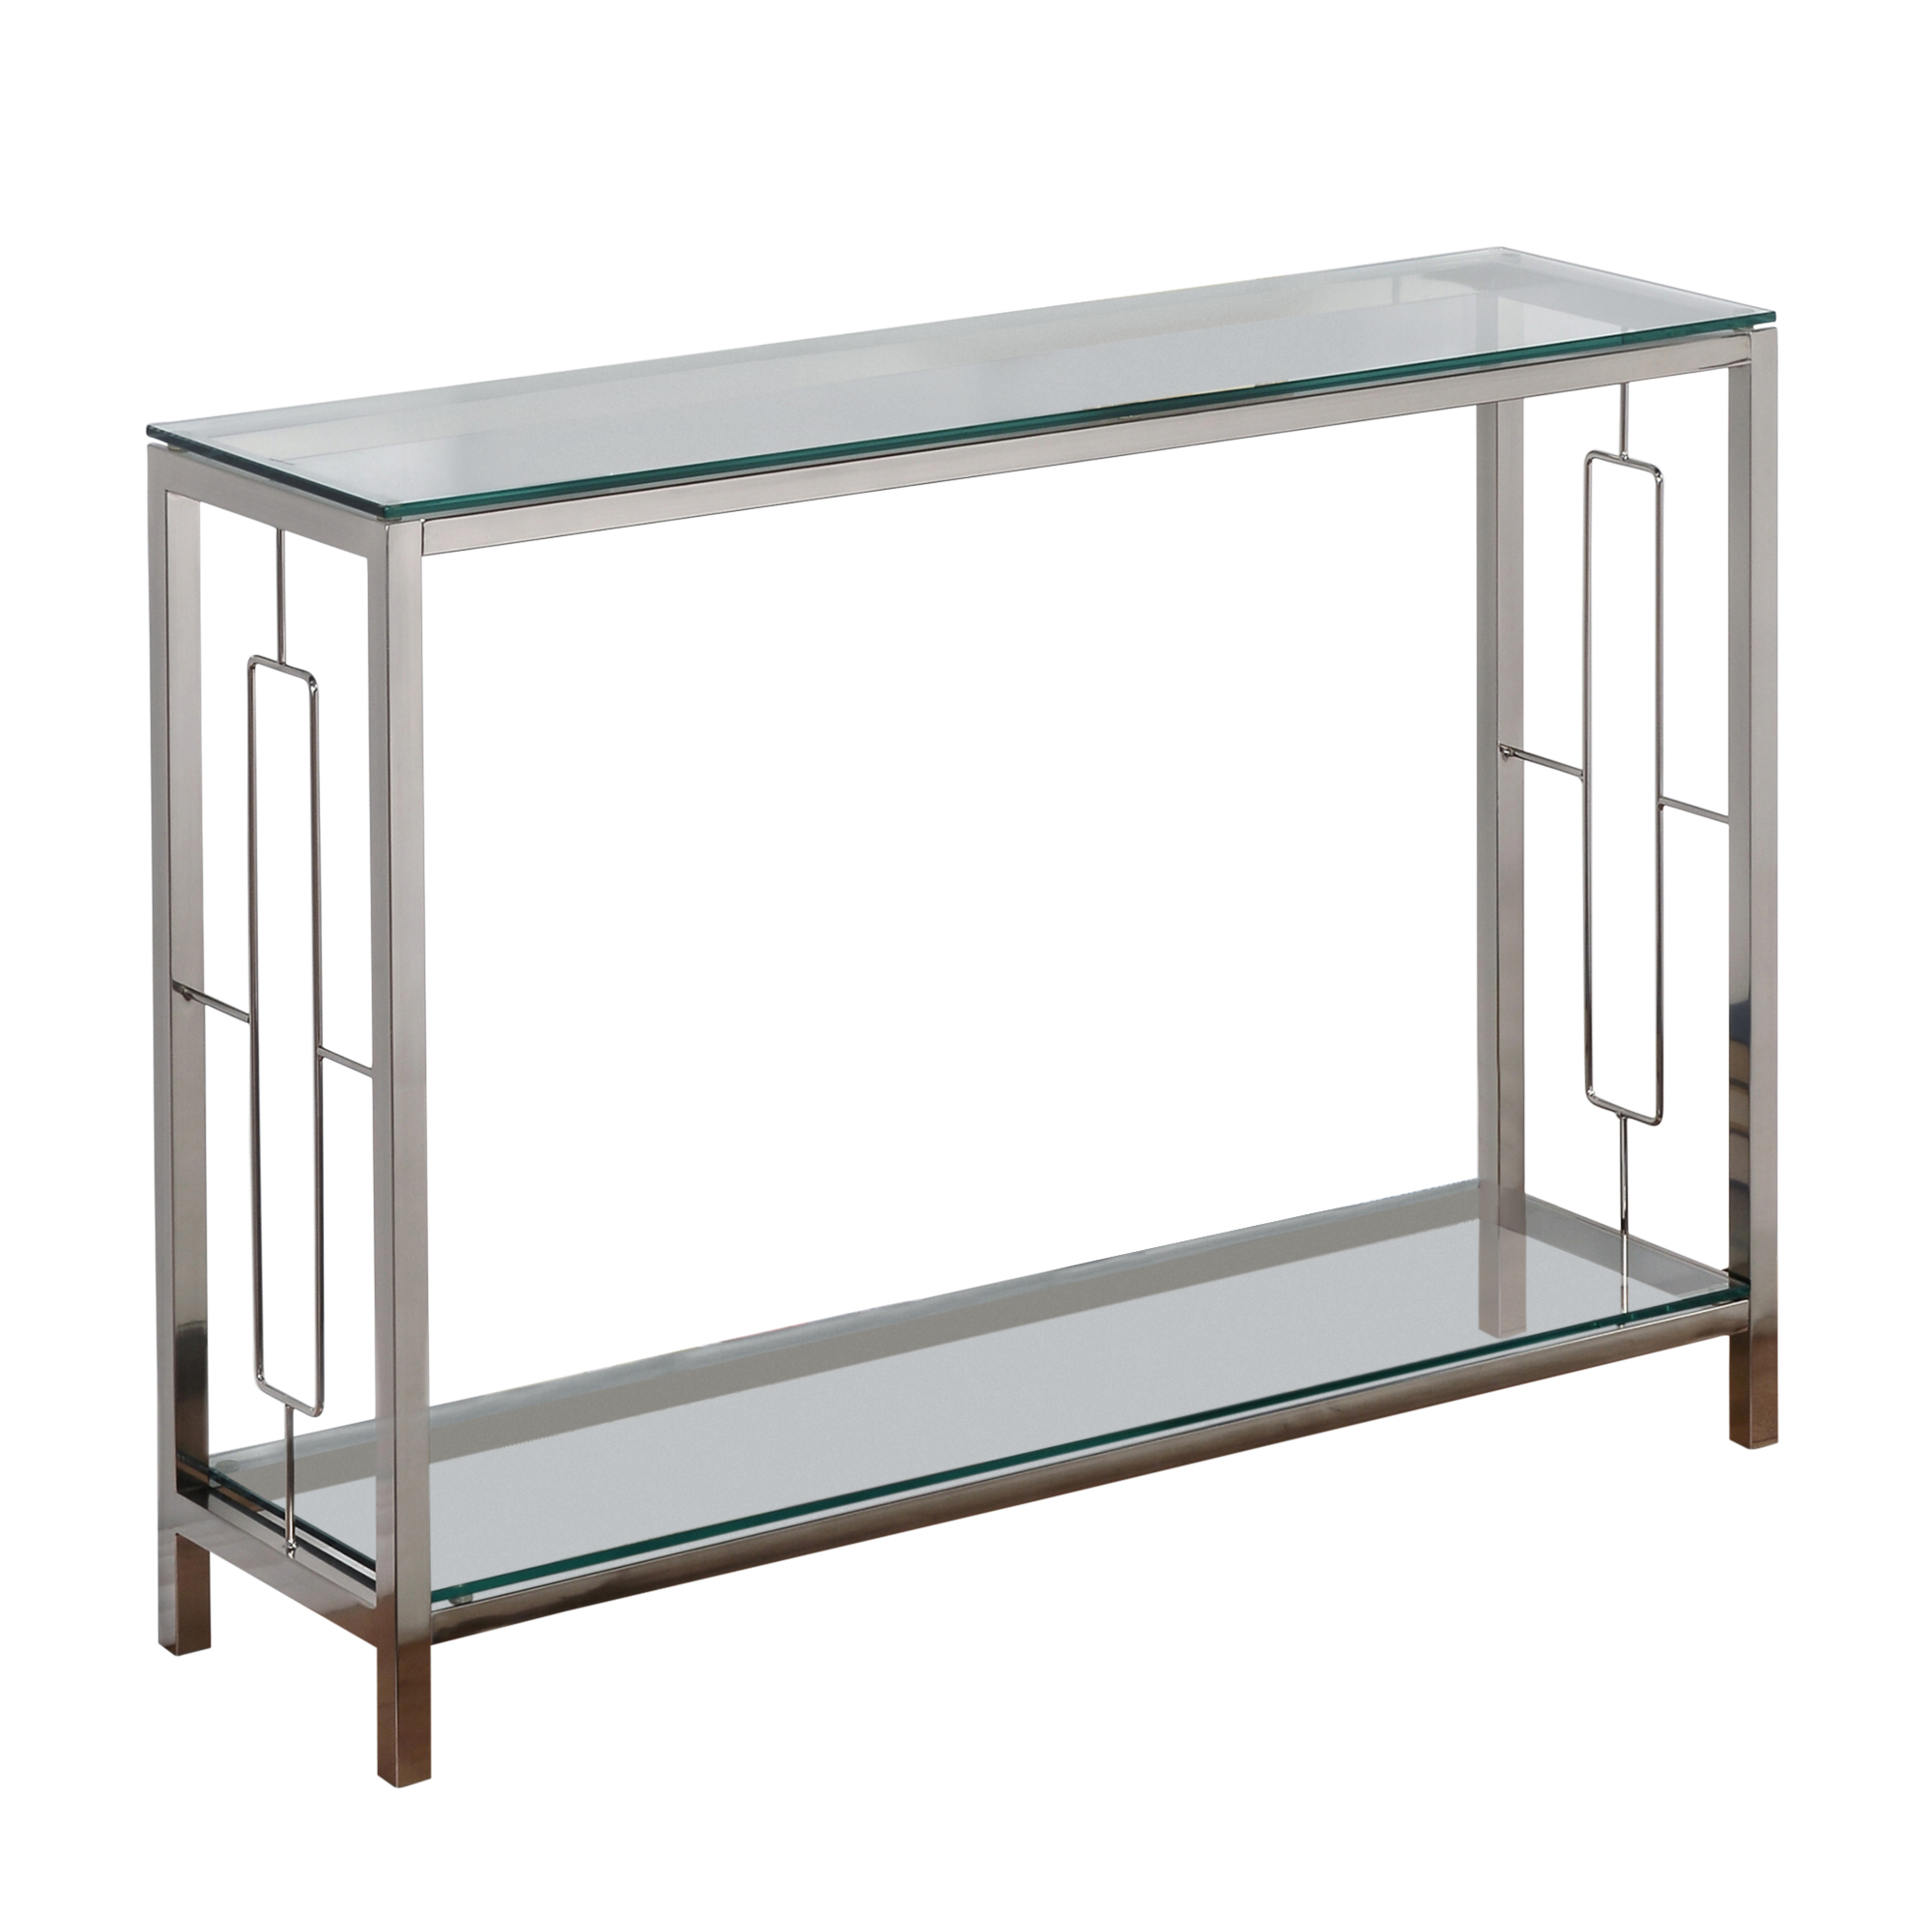 Contemporary Metal & Glass Console Table in Chrome